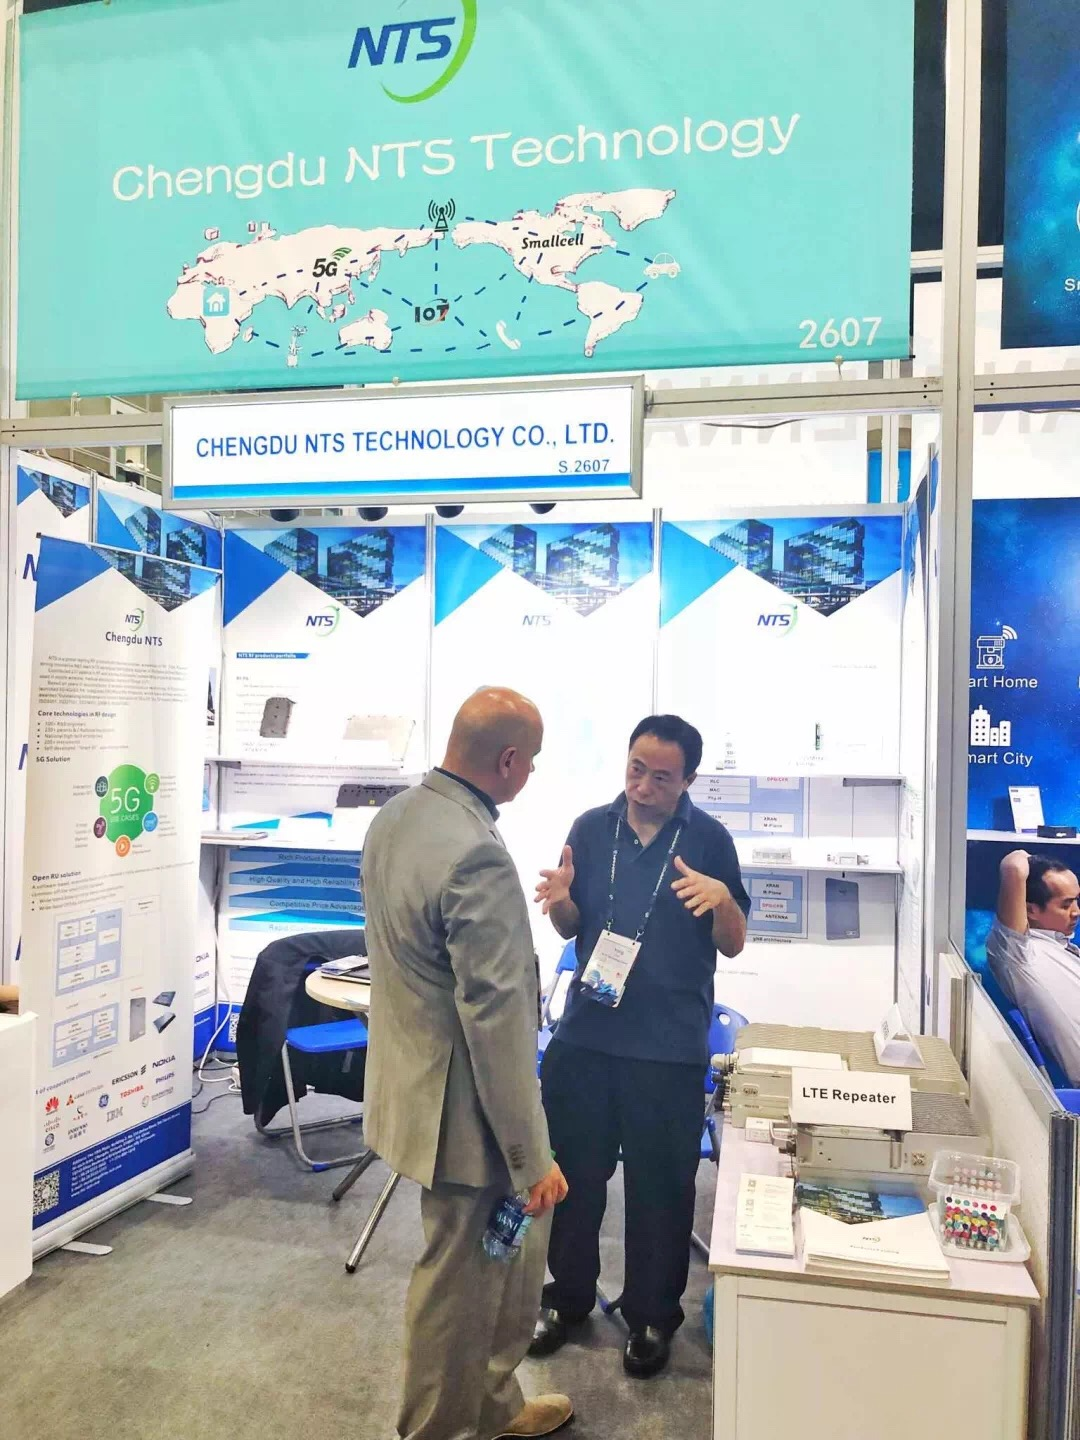 Chengdu NTS showed up with new 5G products in WMCA - NTS